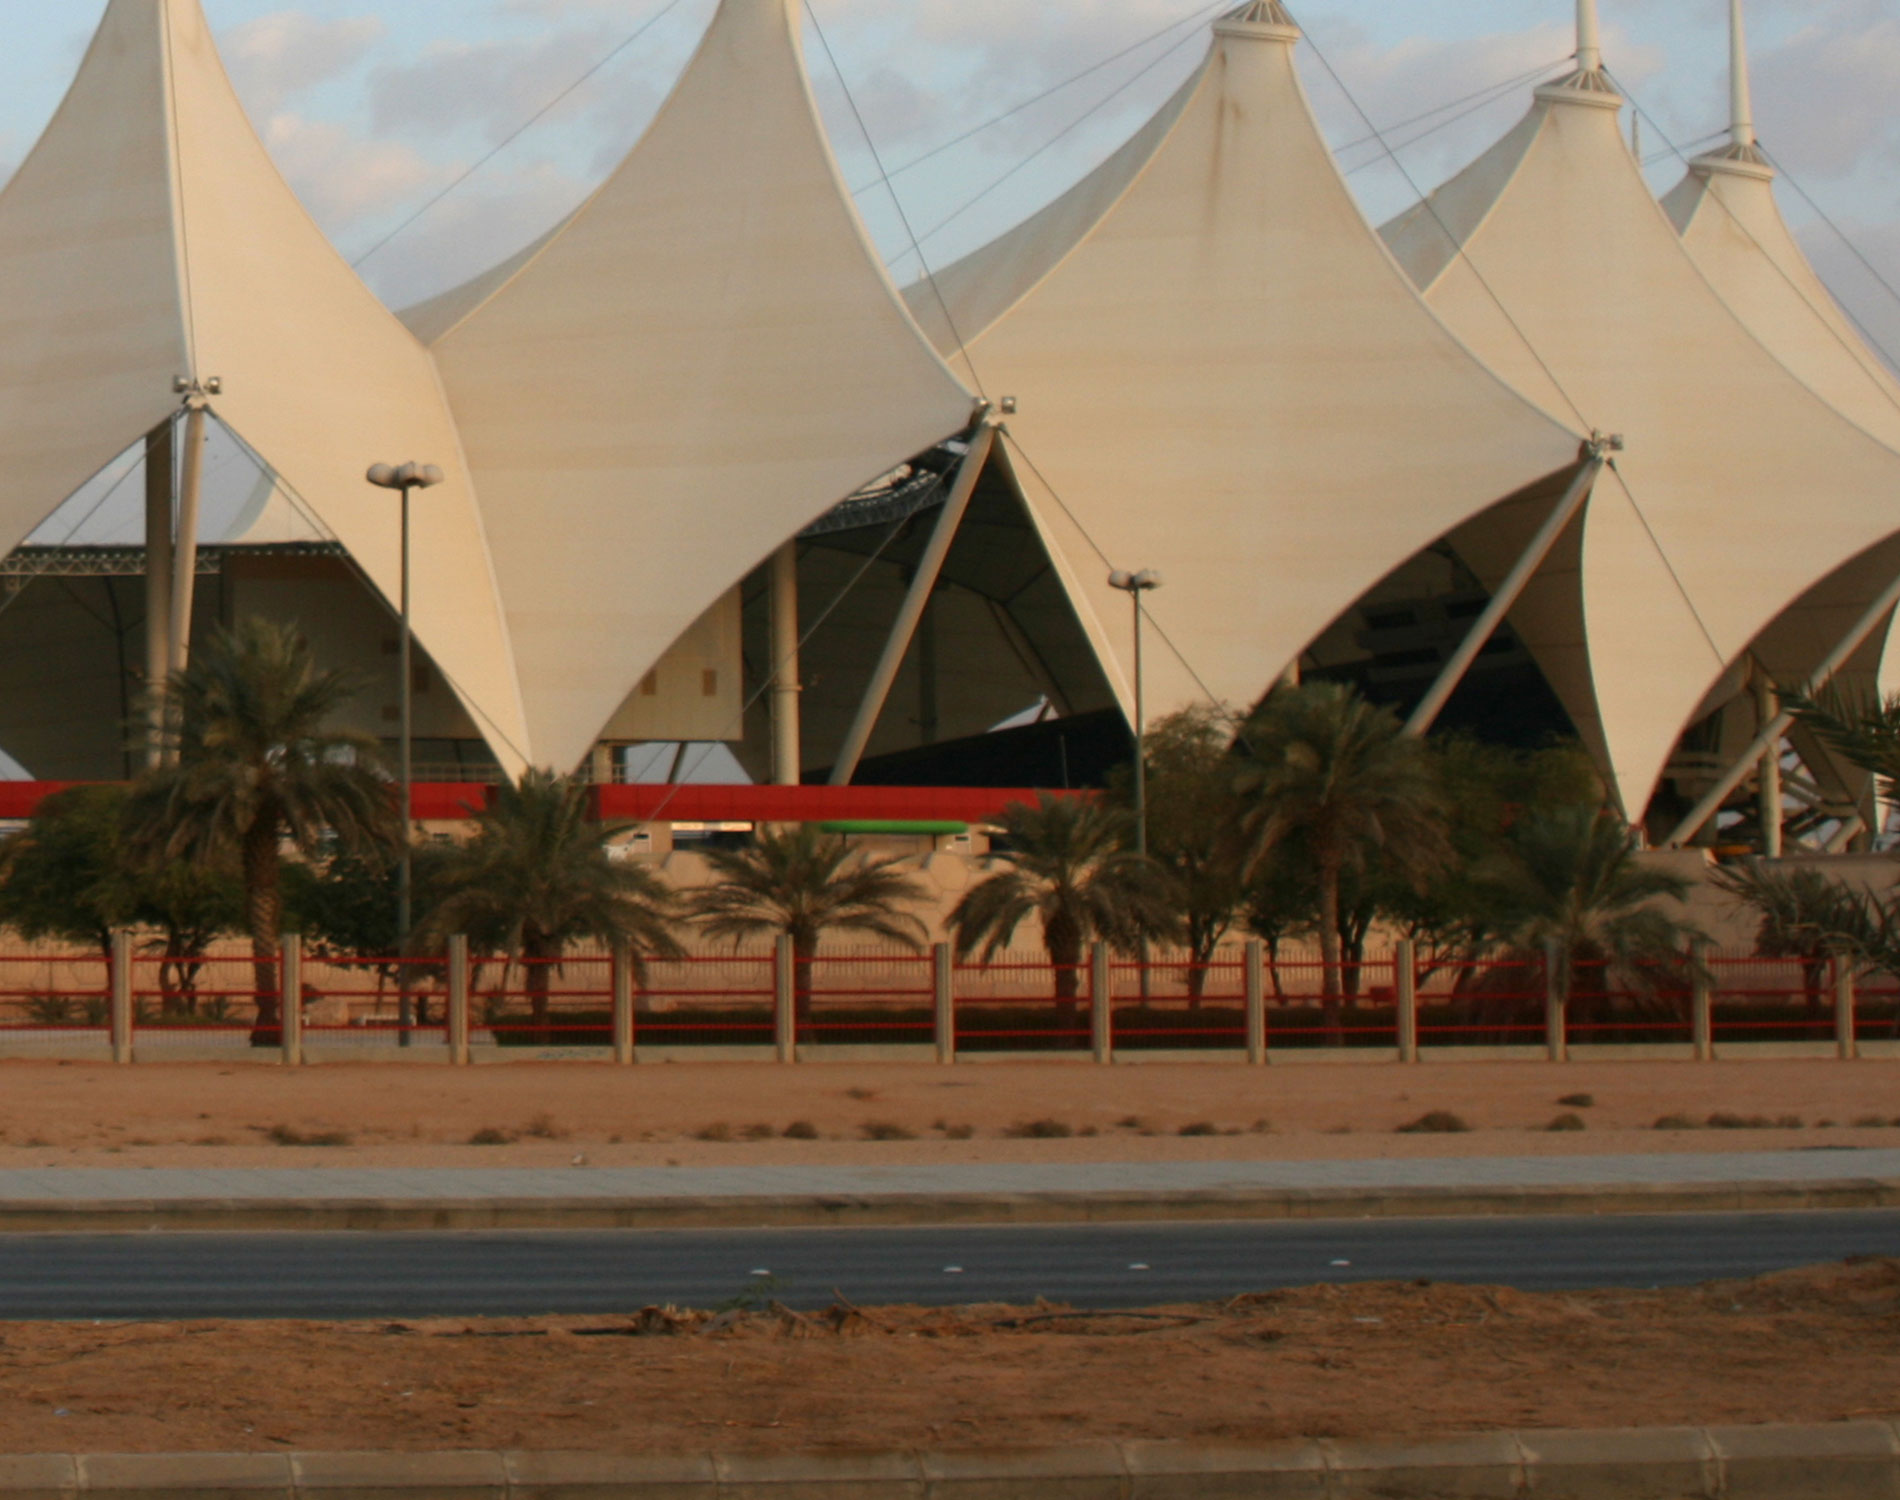 tents in Riyadh